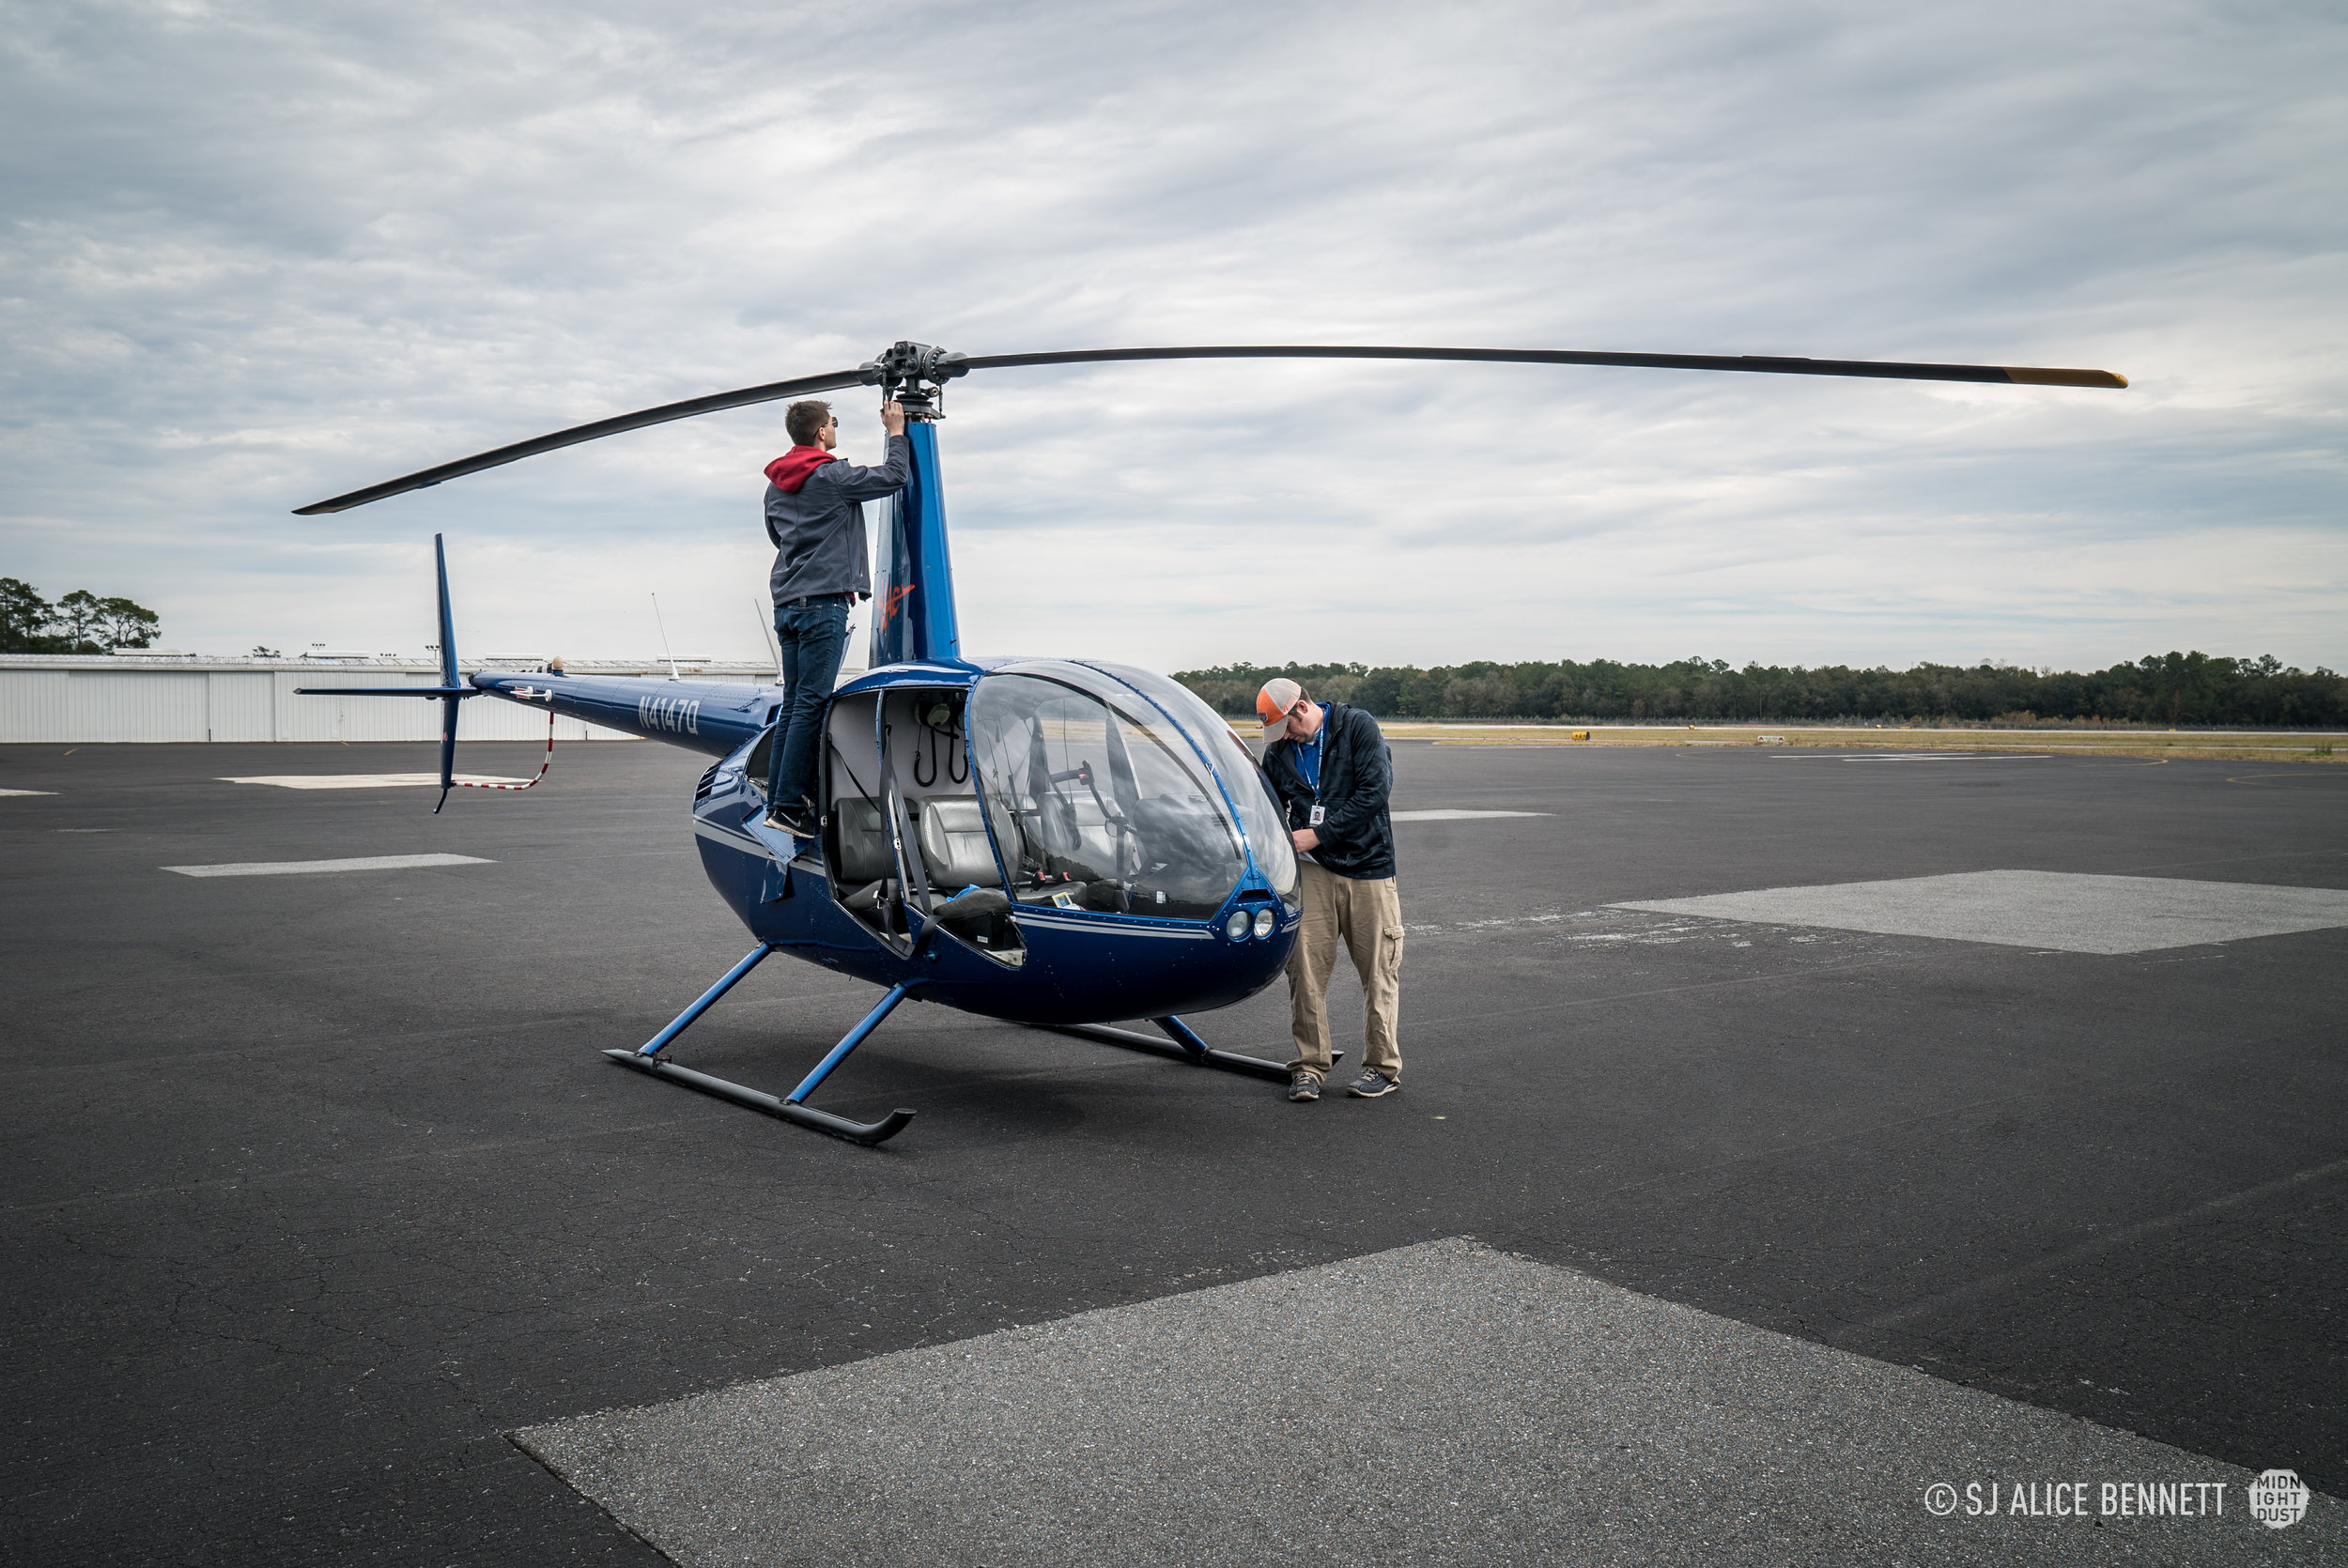 2018_12_19_Helicopter-12.jpg